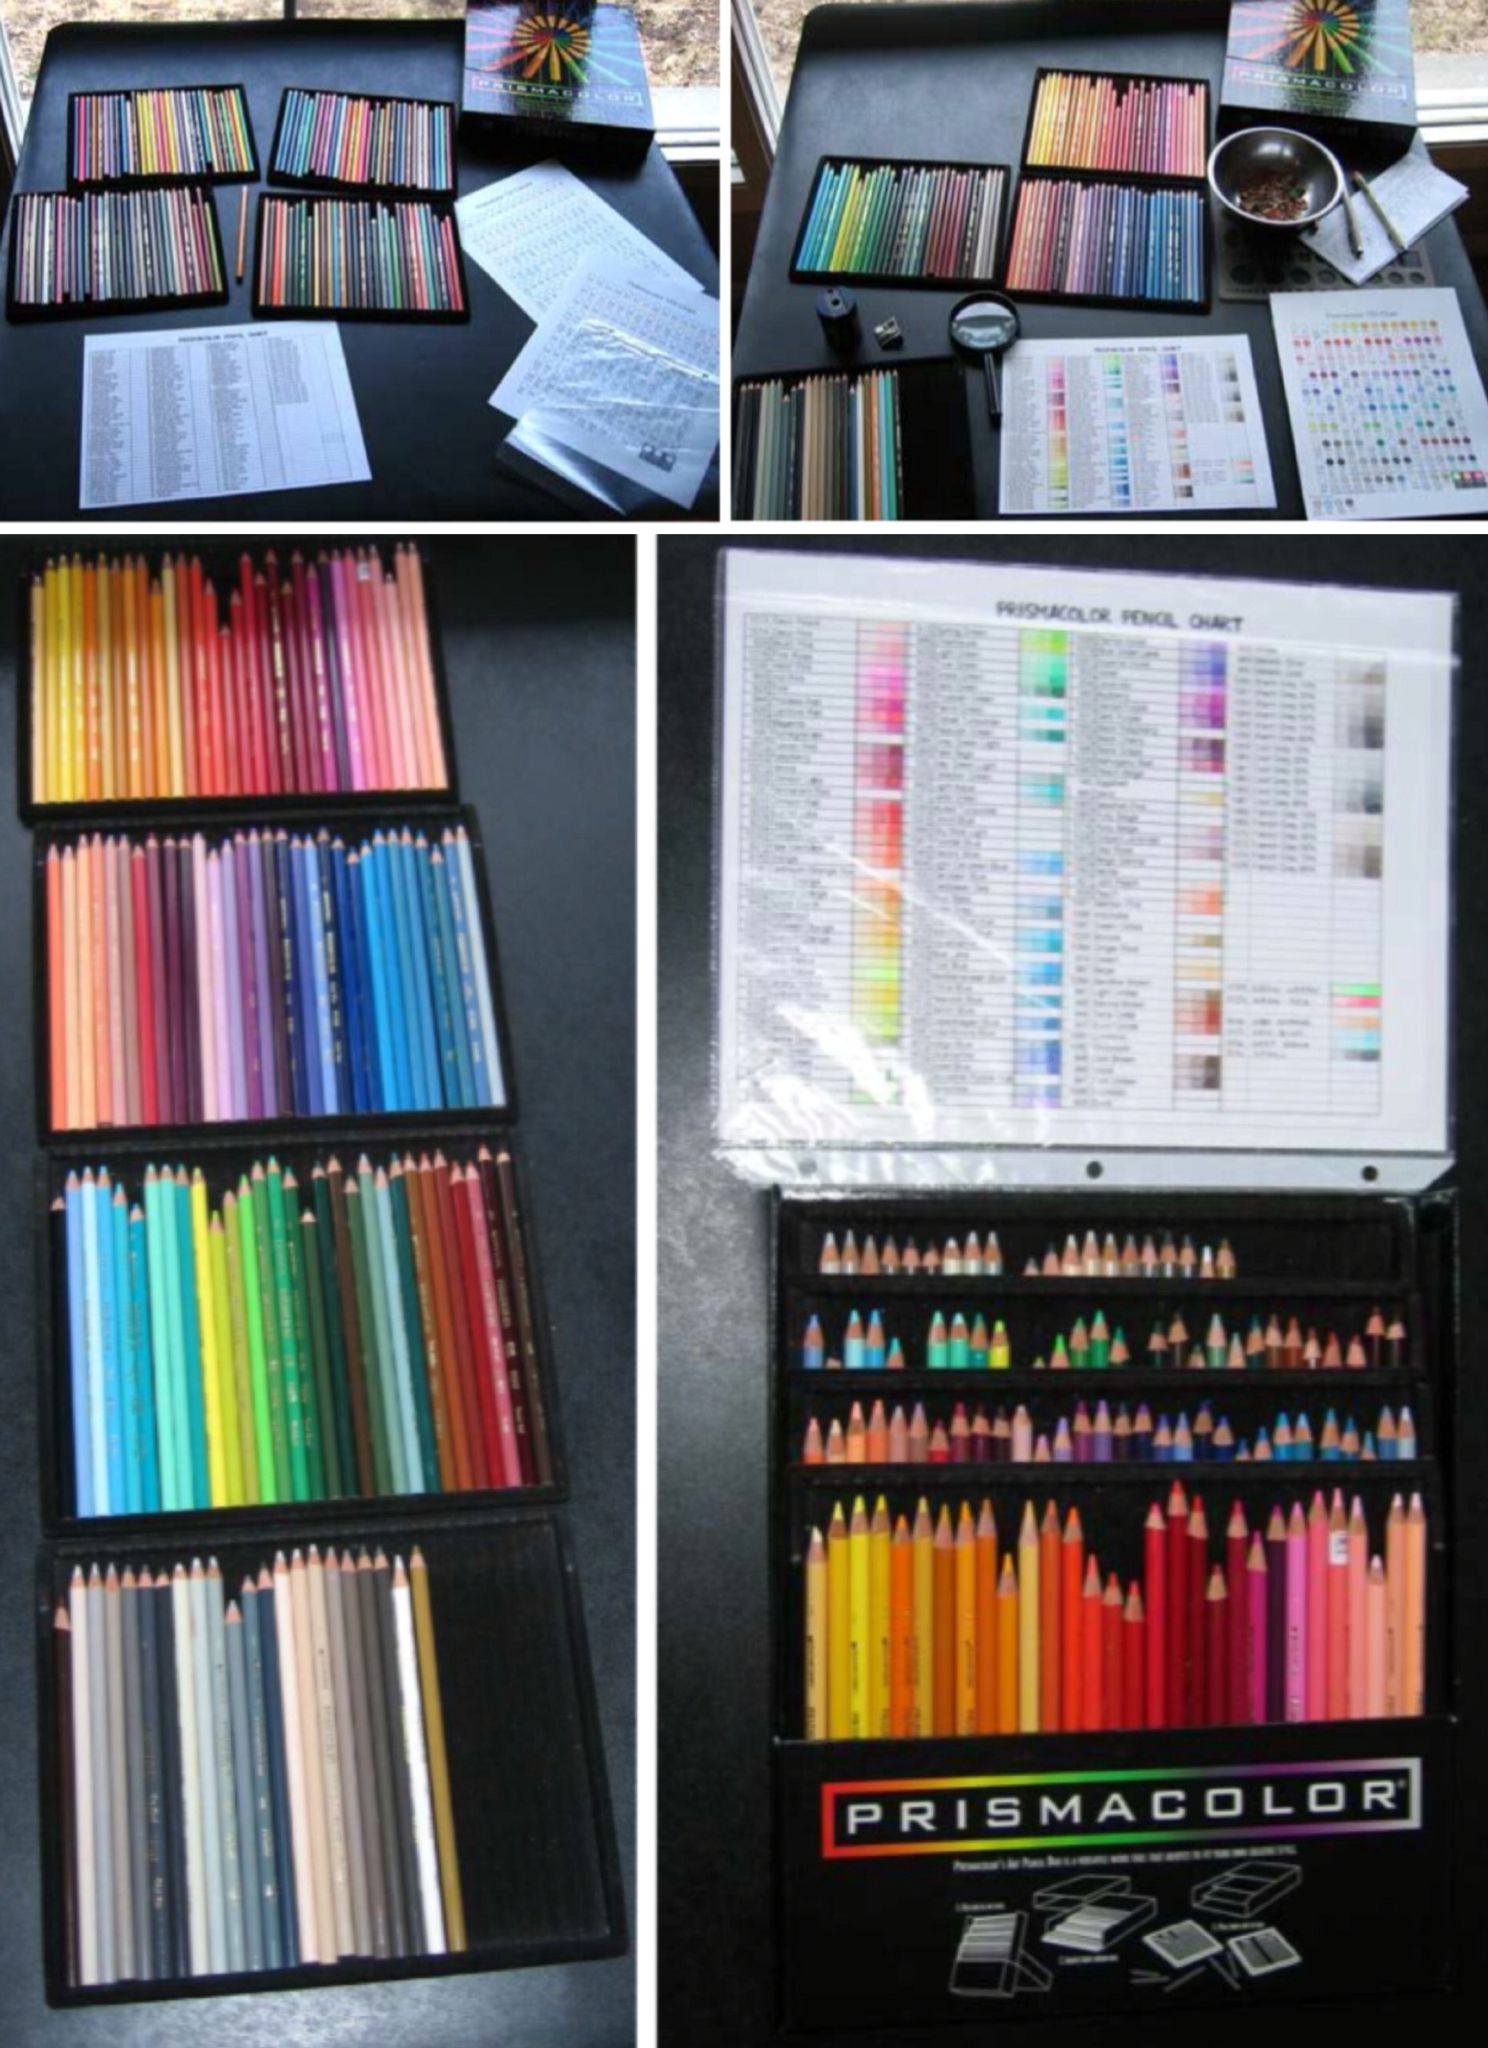 Organization Of Prismacolor Coloured Pencils Via Jj